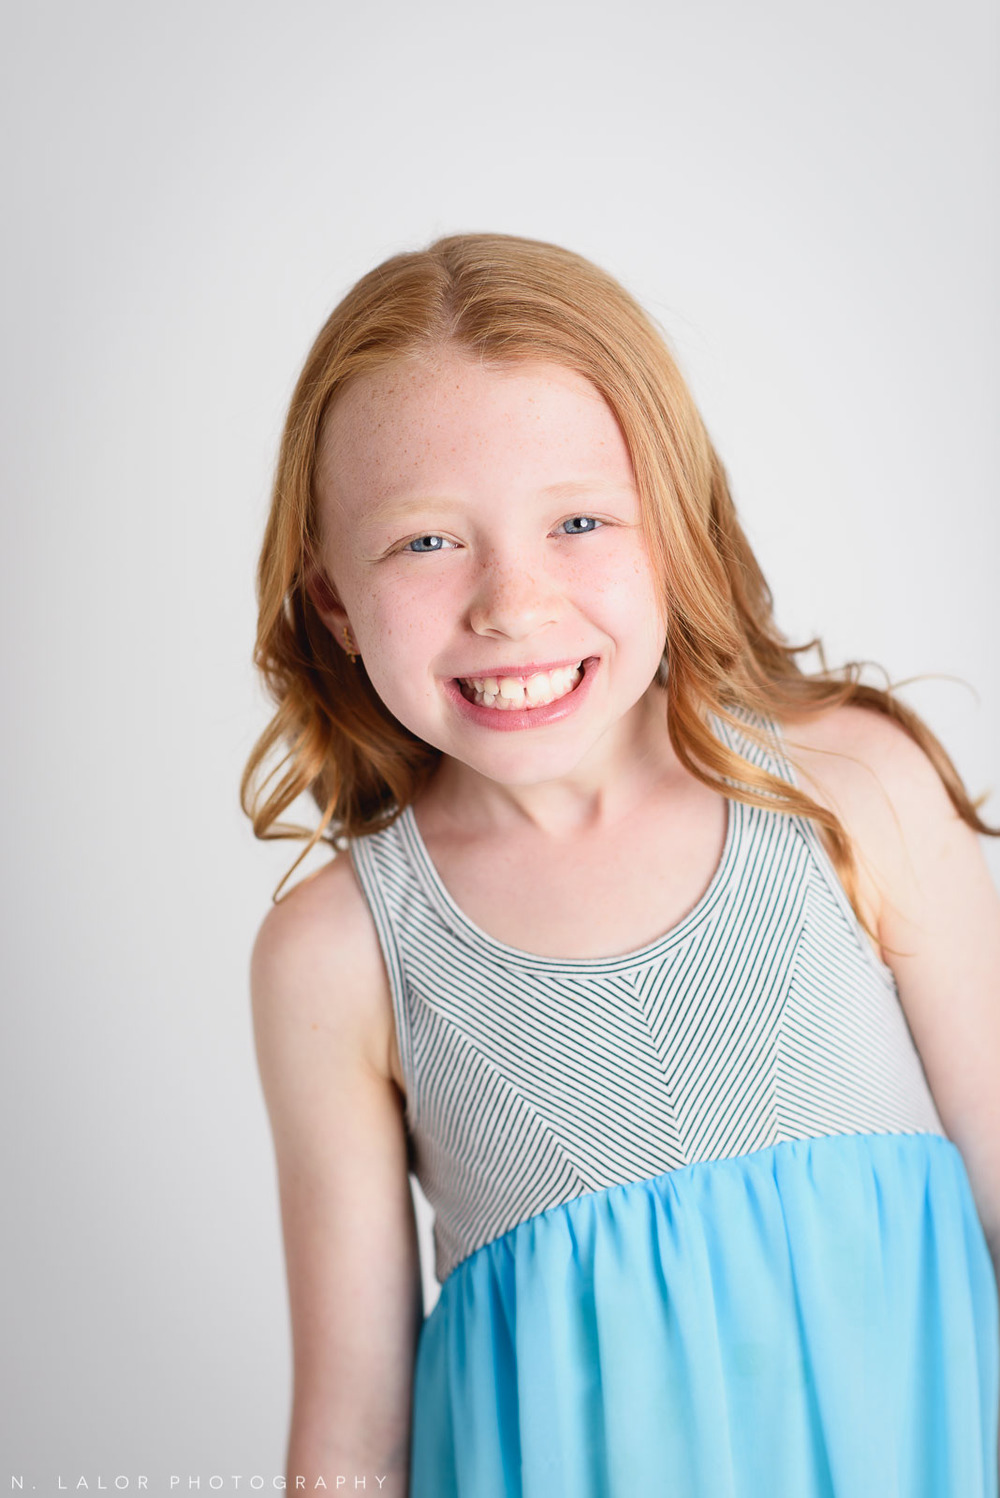 Editorial studio portrait of an 8-year old girl by N. Lalor Photography, located in Greenwich, Connecticut.